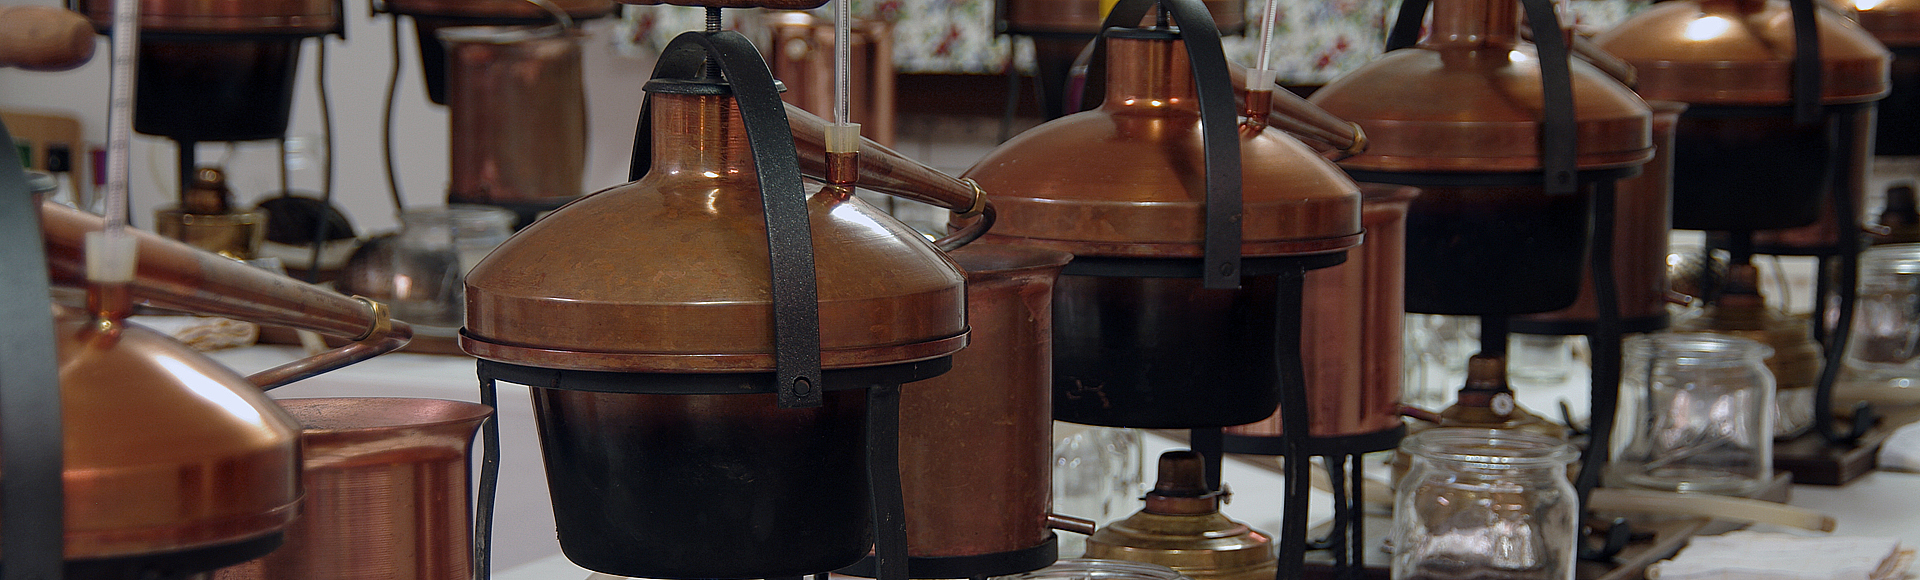 Distillation of Alcohol & Spirits at Home